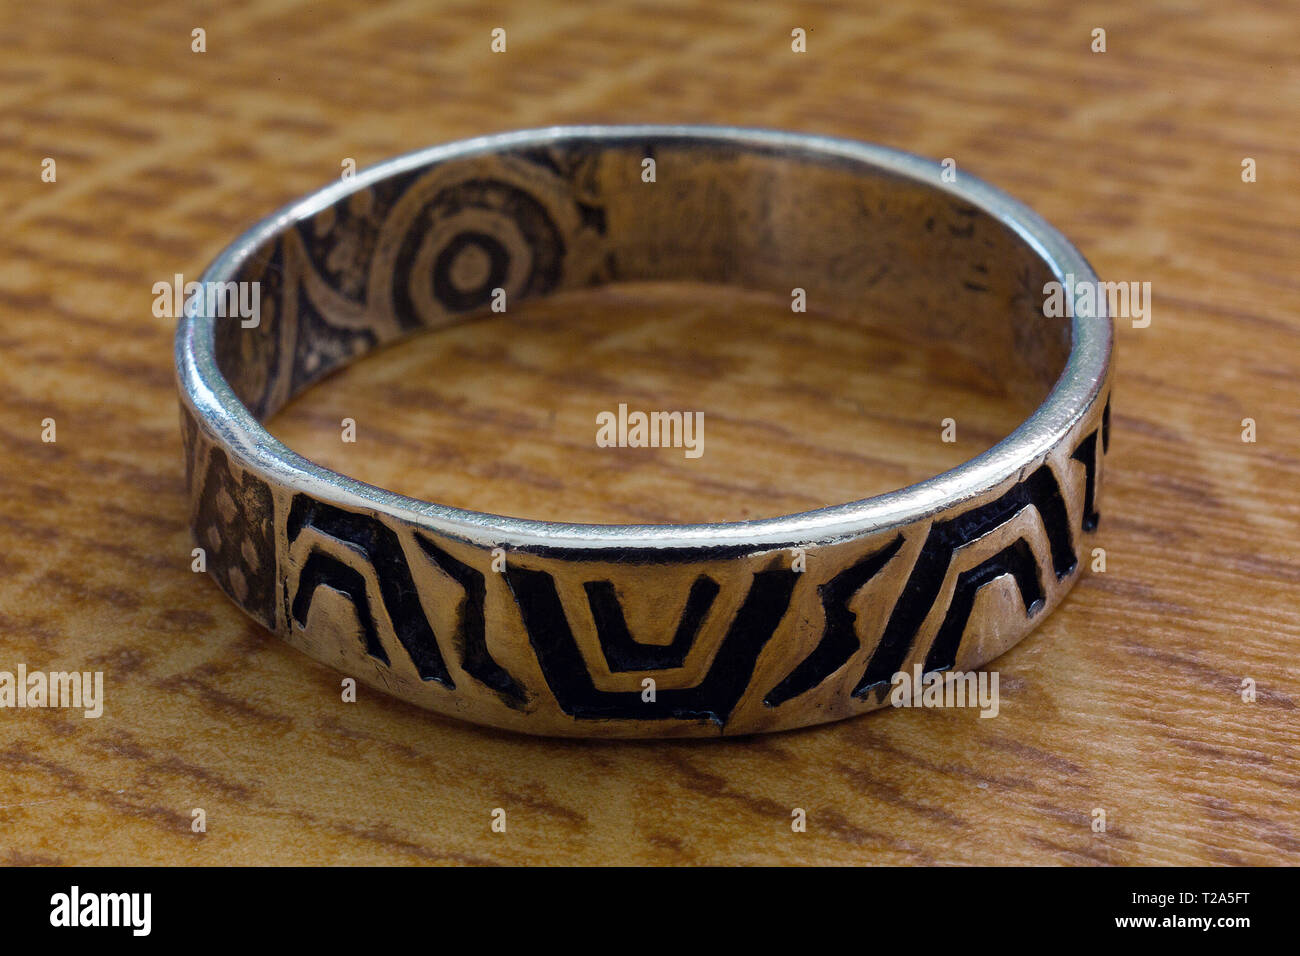 very,close,of,silver,ring,runes,Germanic.languages,Greek,alphabet,150,ad, - Stock Image